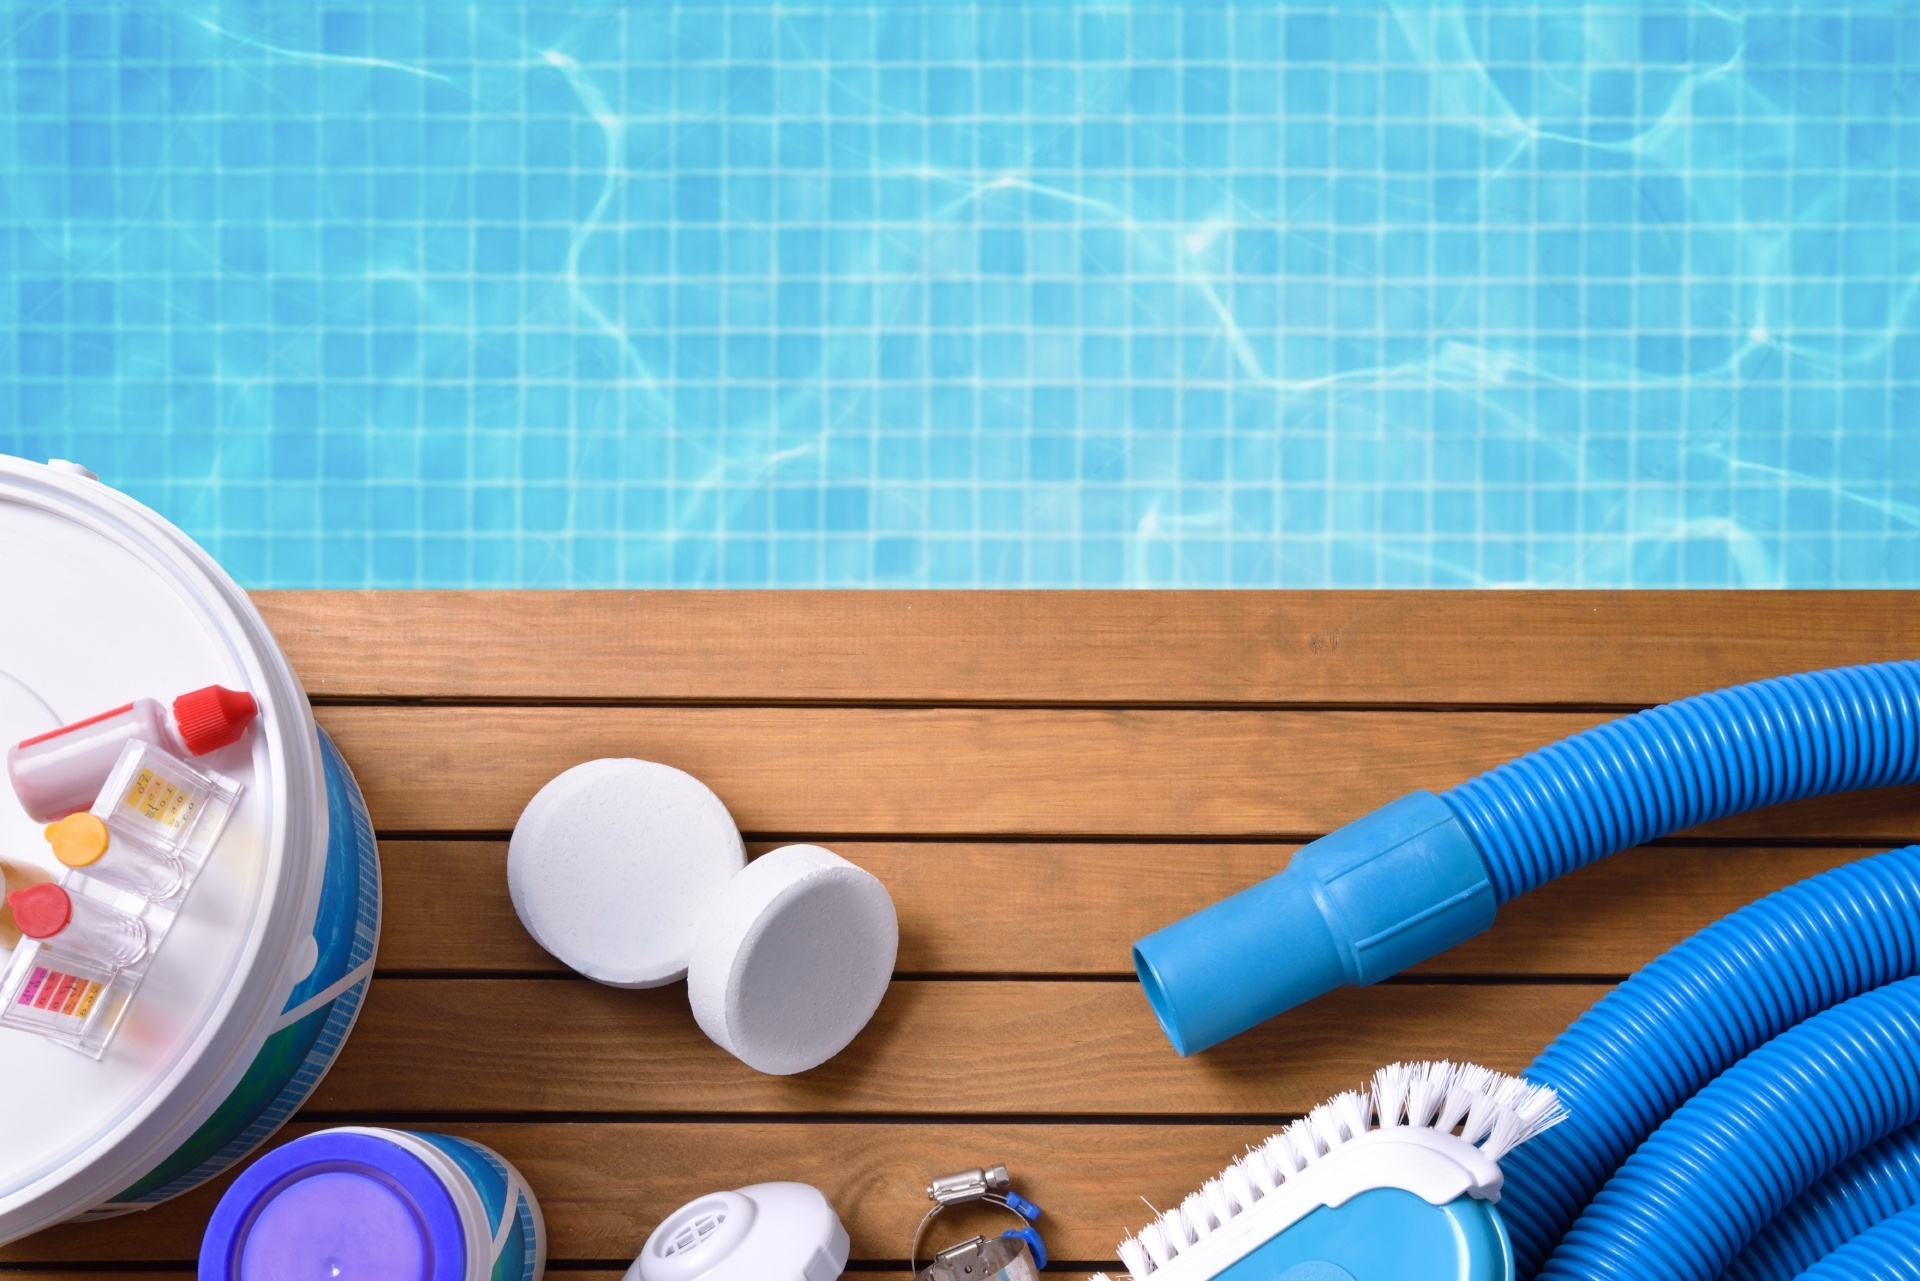 Pool Products-257669-edited.jpg